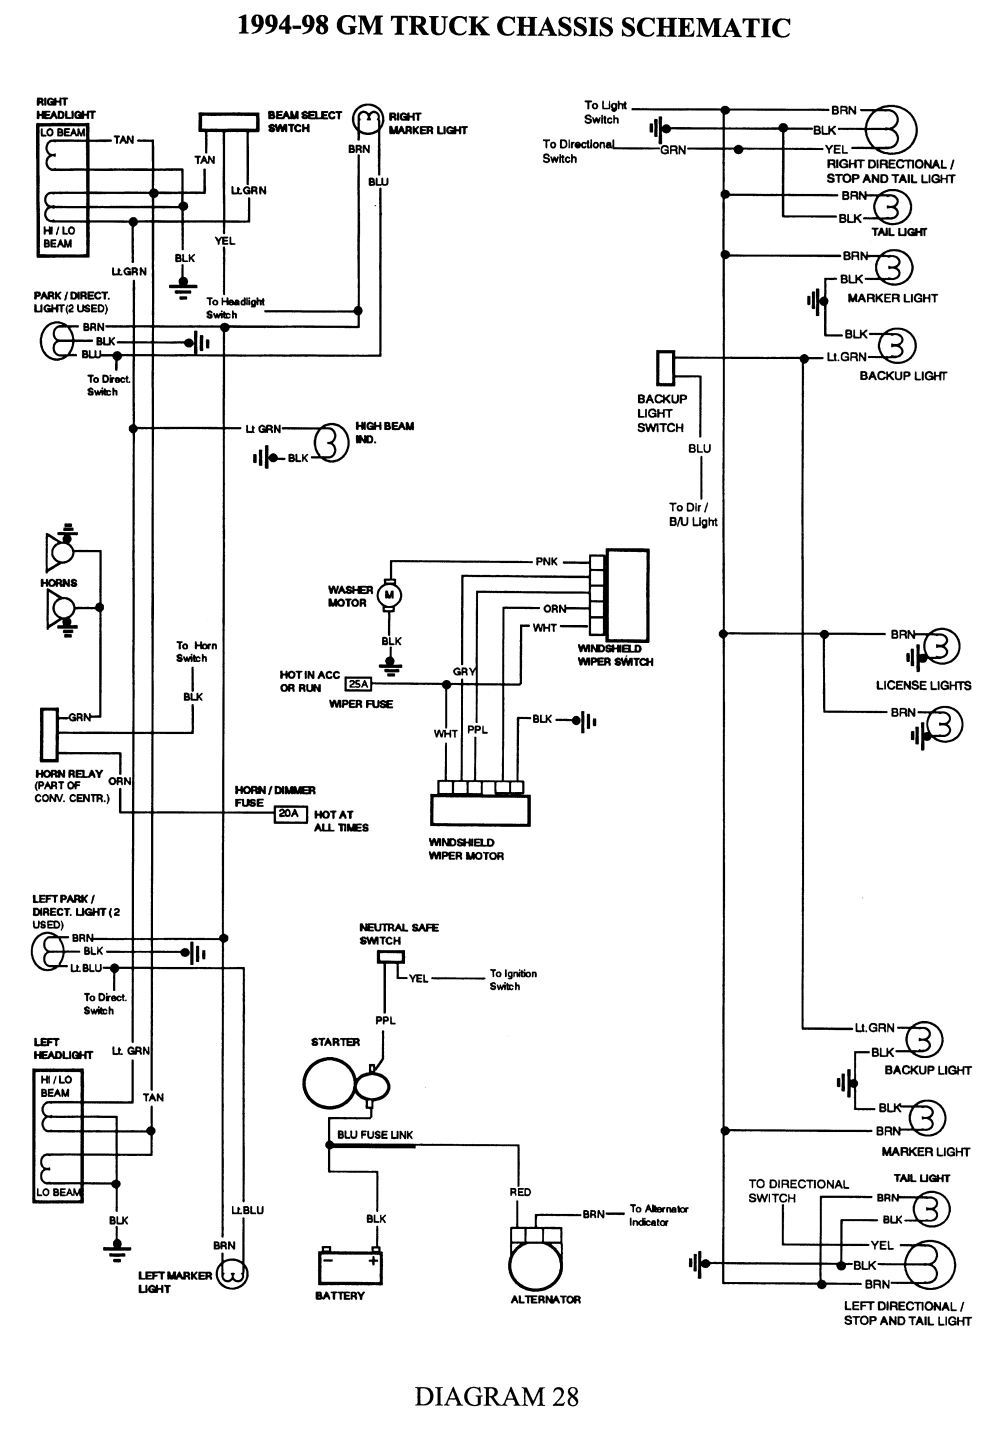 DIAGRAM Daihatsu Terios 2004 Wiring Diagram FULL Version ...